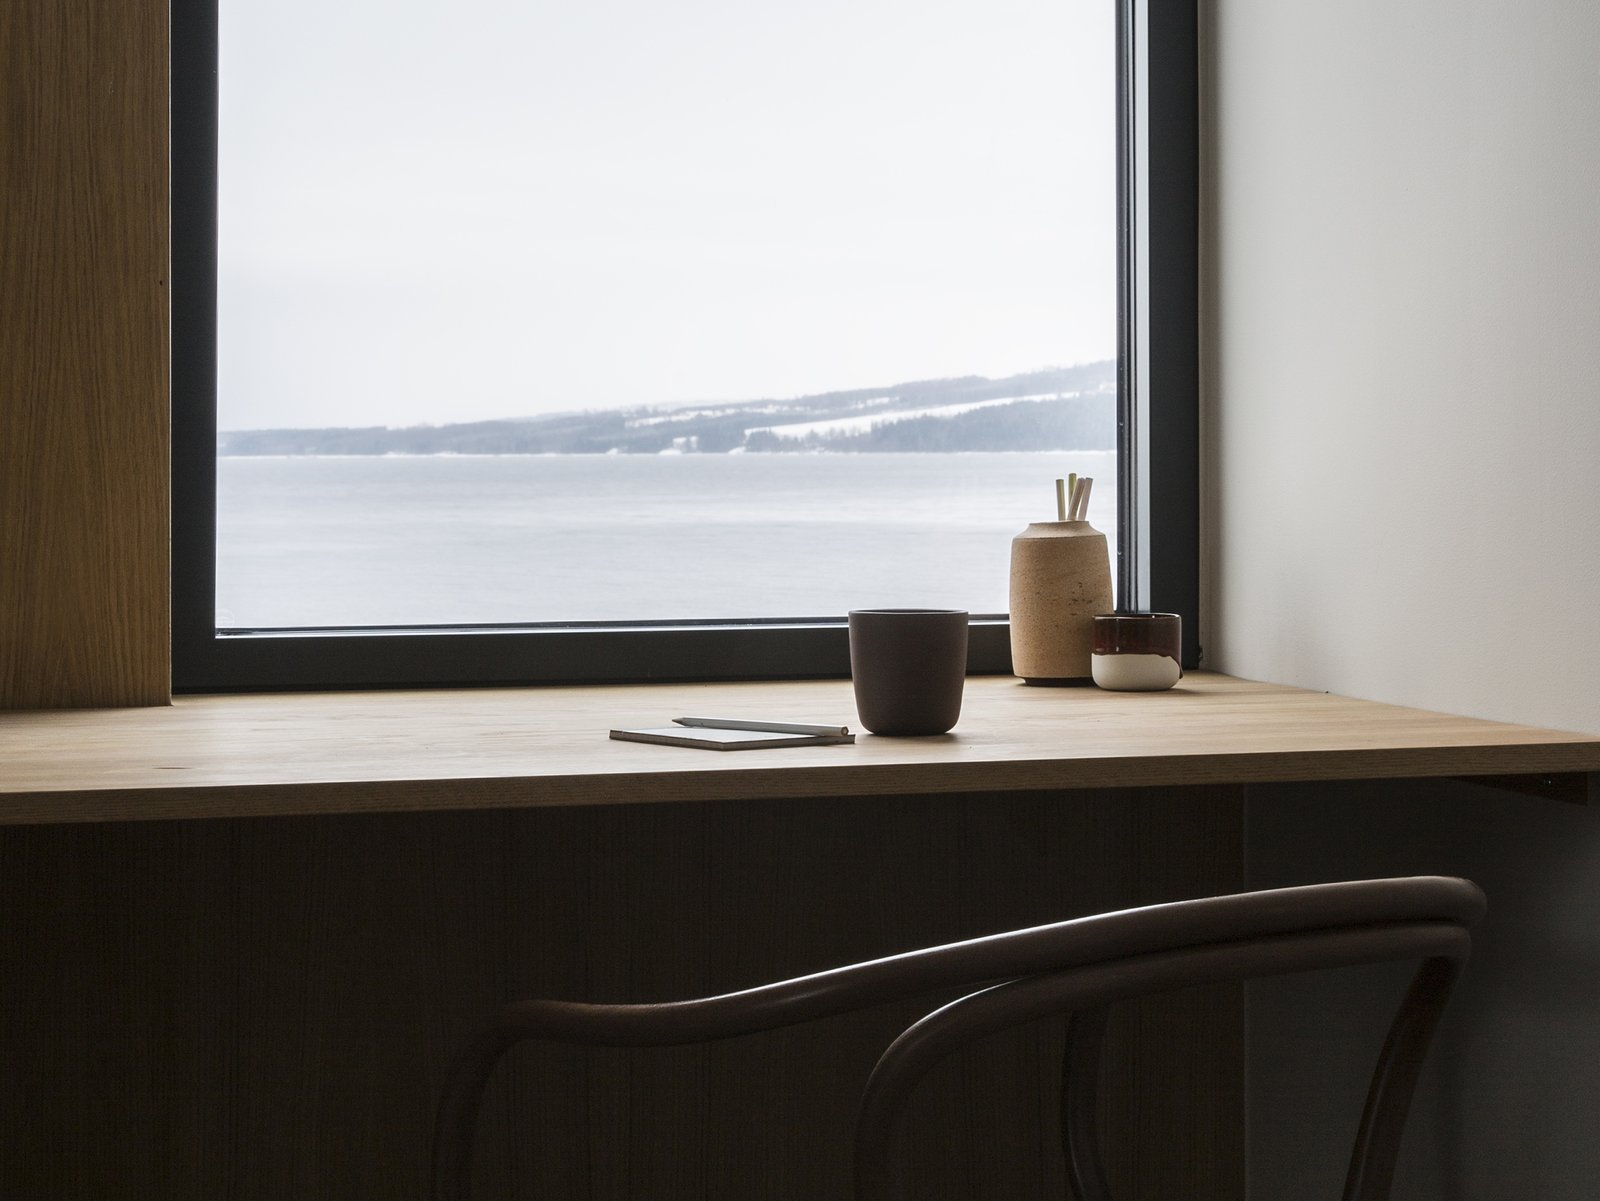 Office, Desk, Chair, and Study Room Type  Photo 14 of 18 in A Cubic Dwelling in Norway Just Oozes Hygge